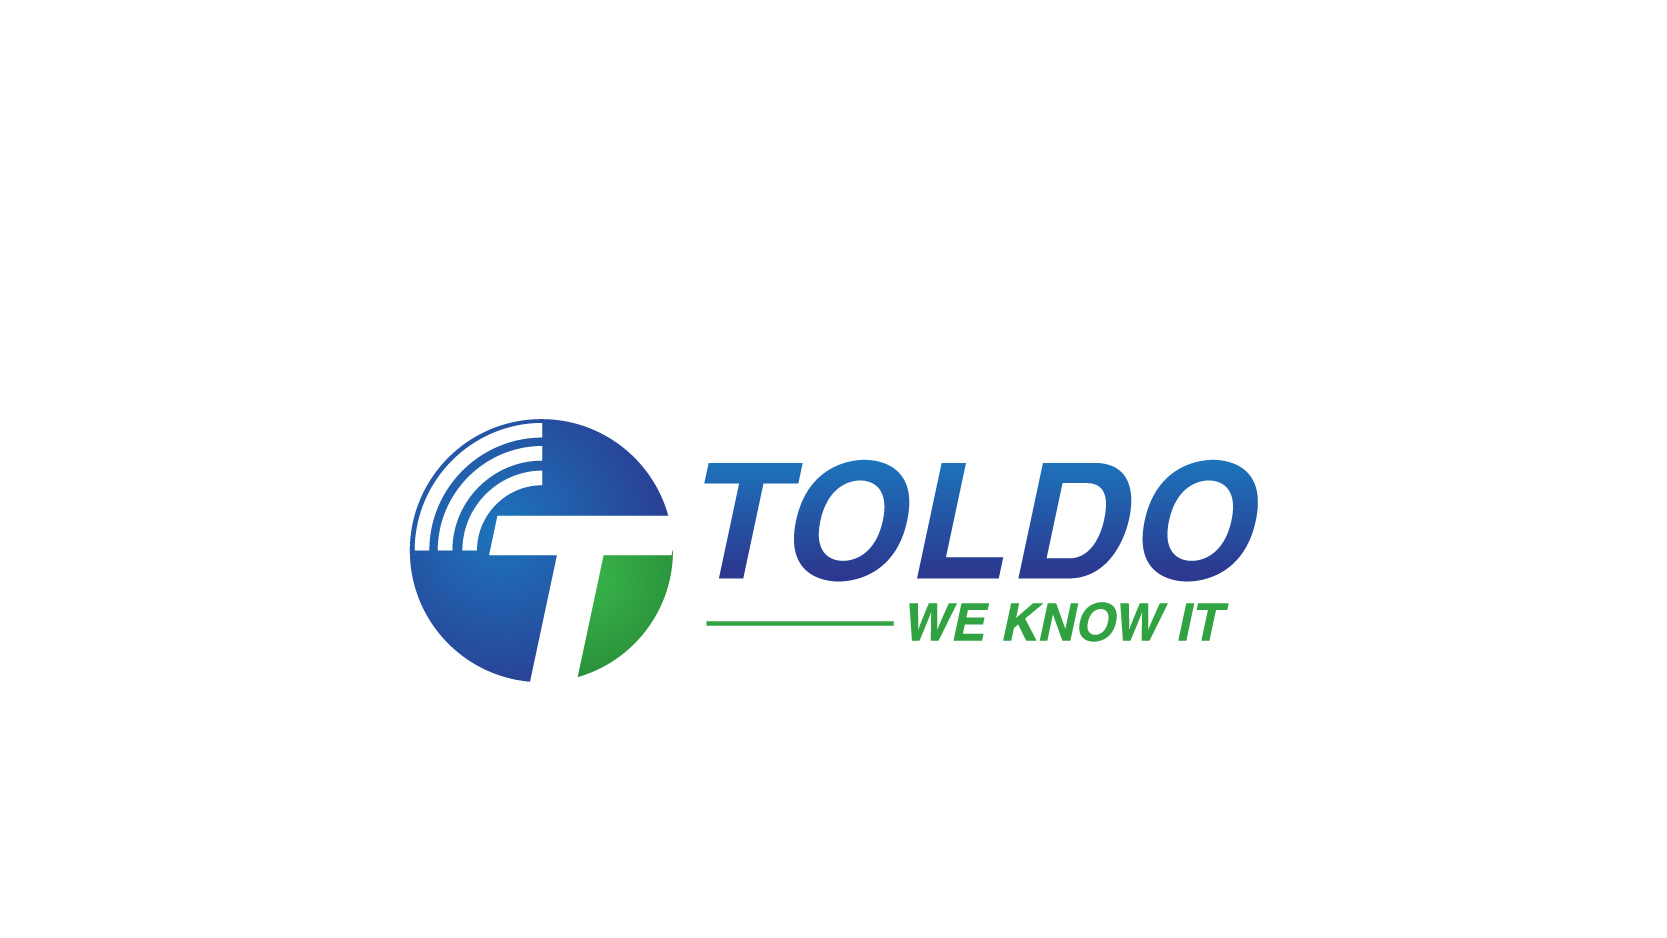 Toldo IT logo